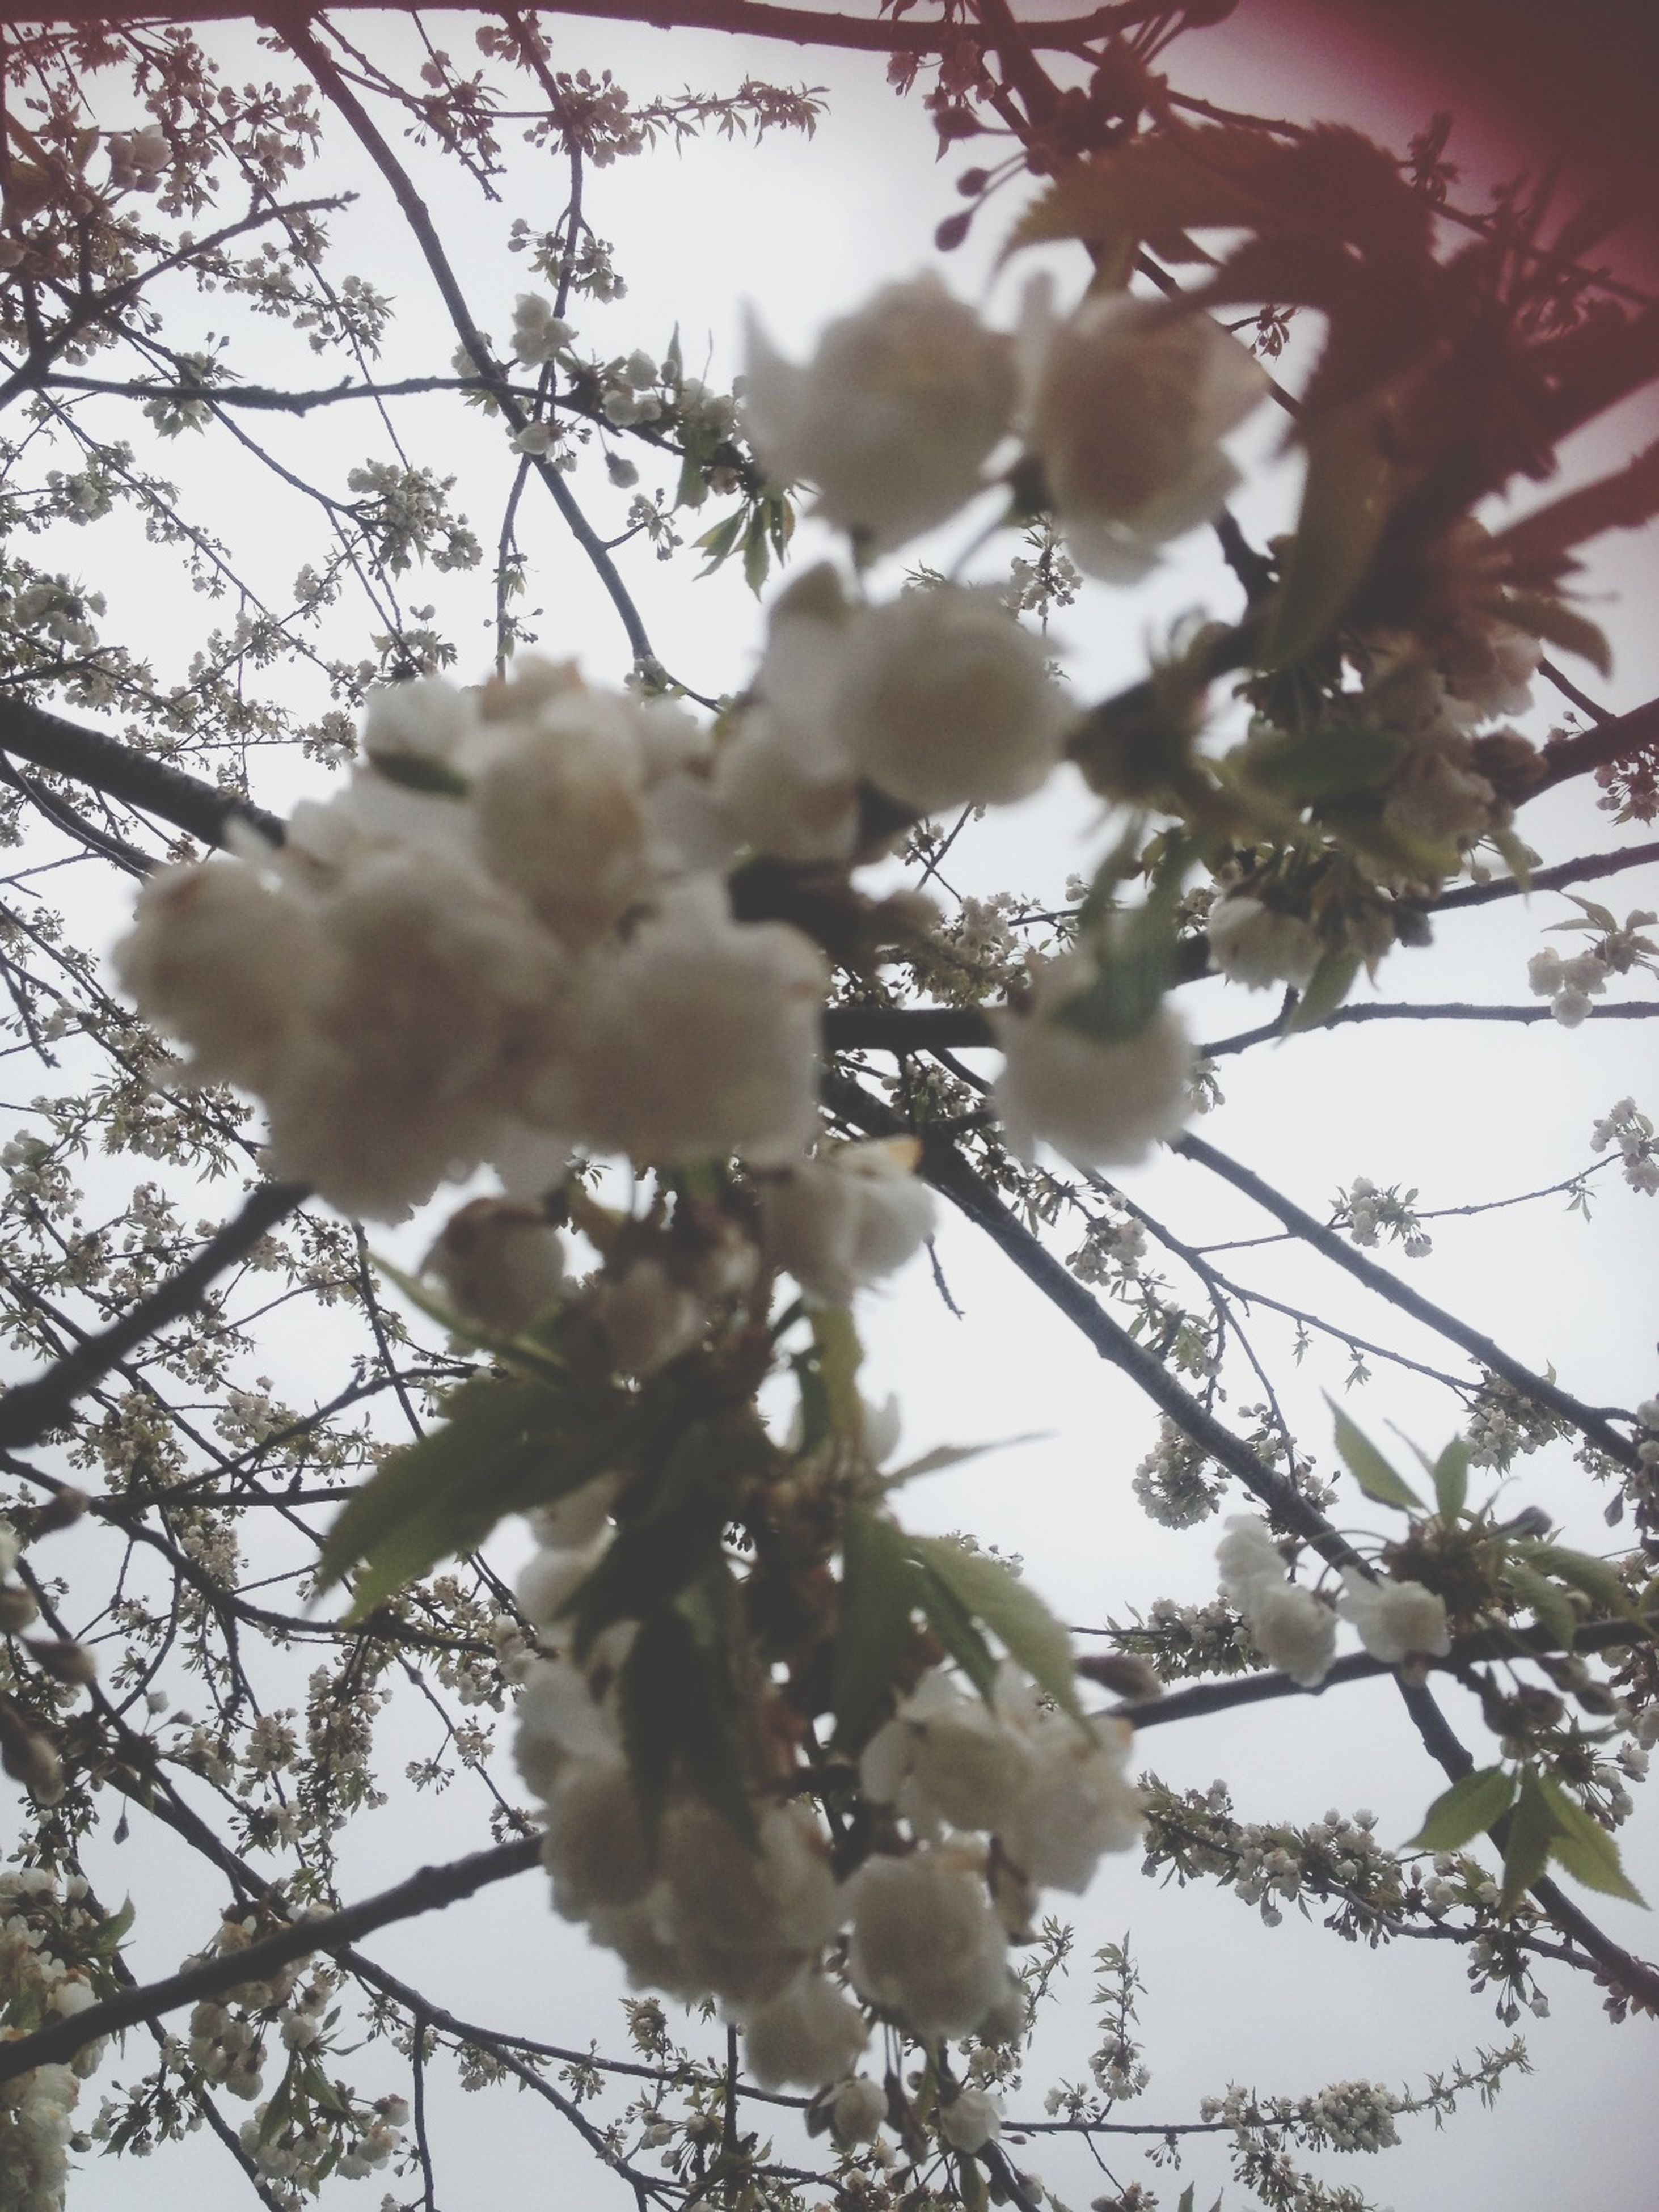 low angle view, flower, tree, branch, growth, freshness, nature, beauty in nature, fragility, sky, focus on foreground, day, close-up, outdoors, no people, twig, blossom, springtime, white color, blooming